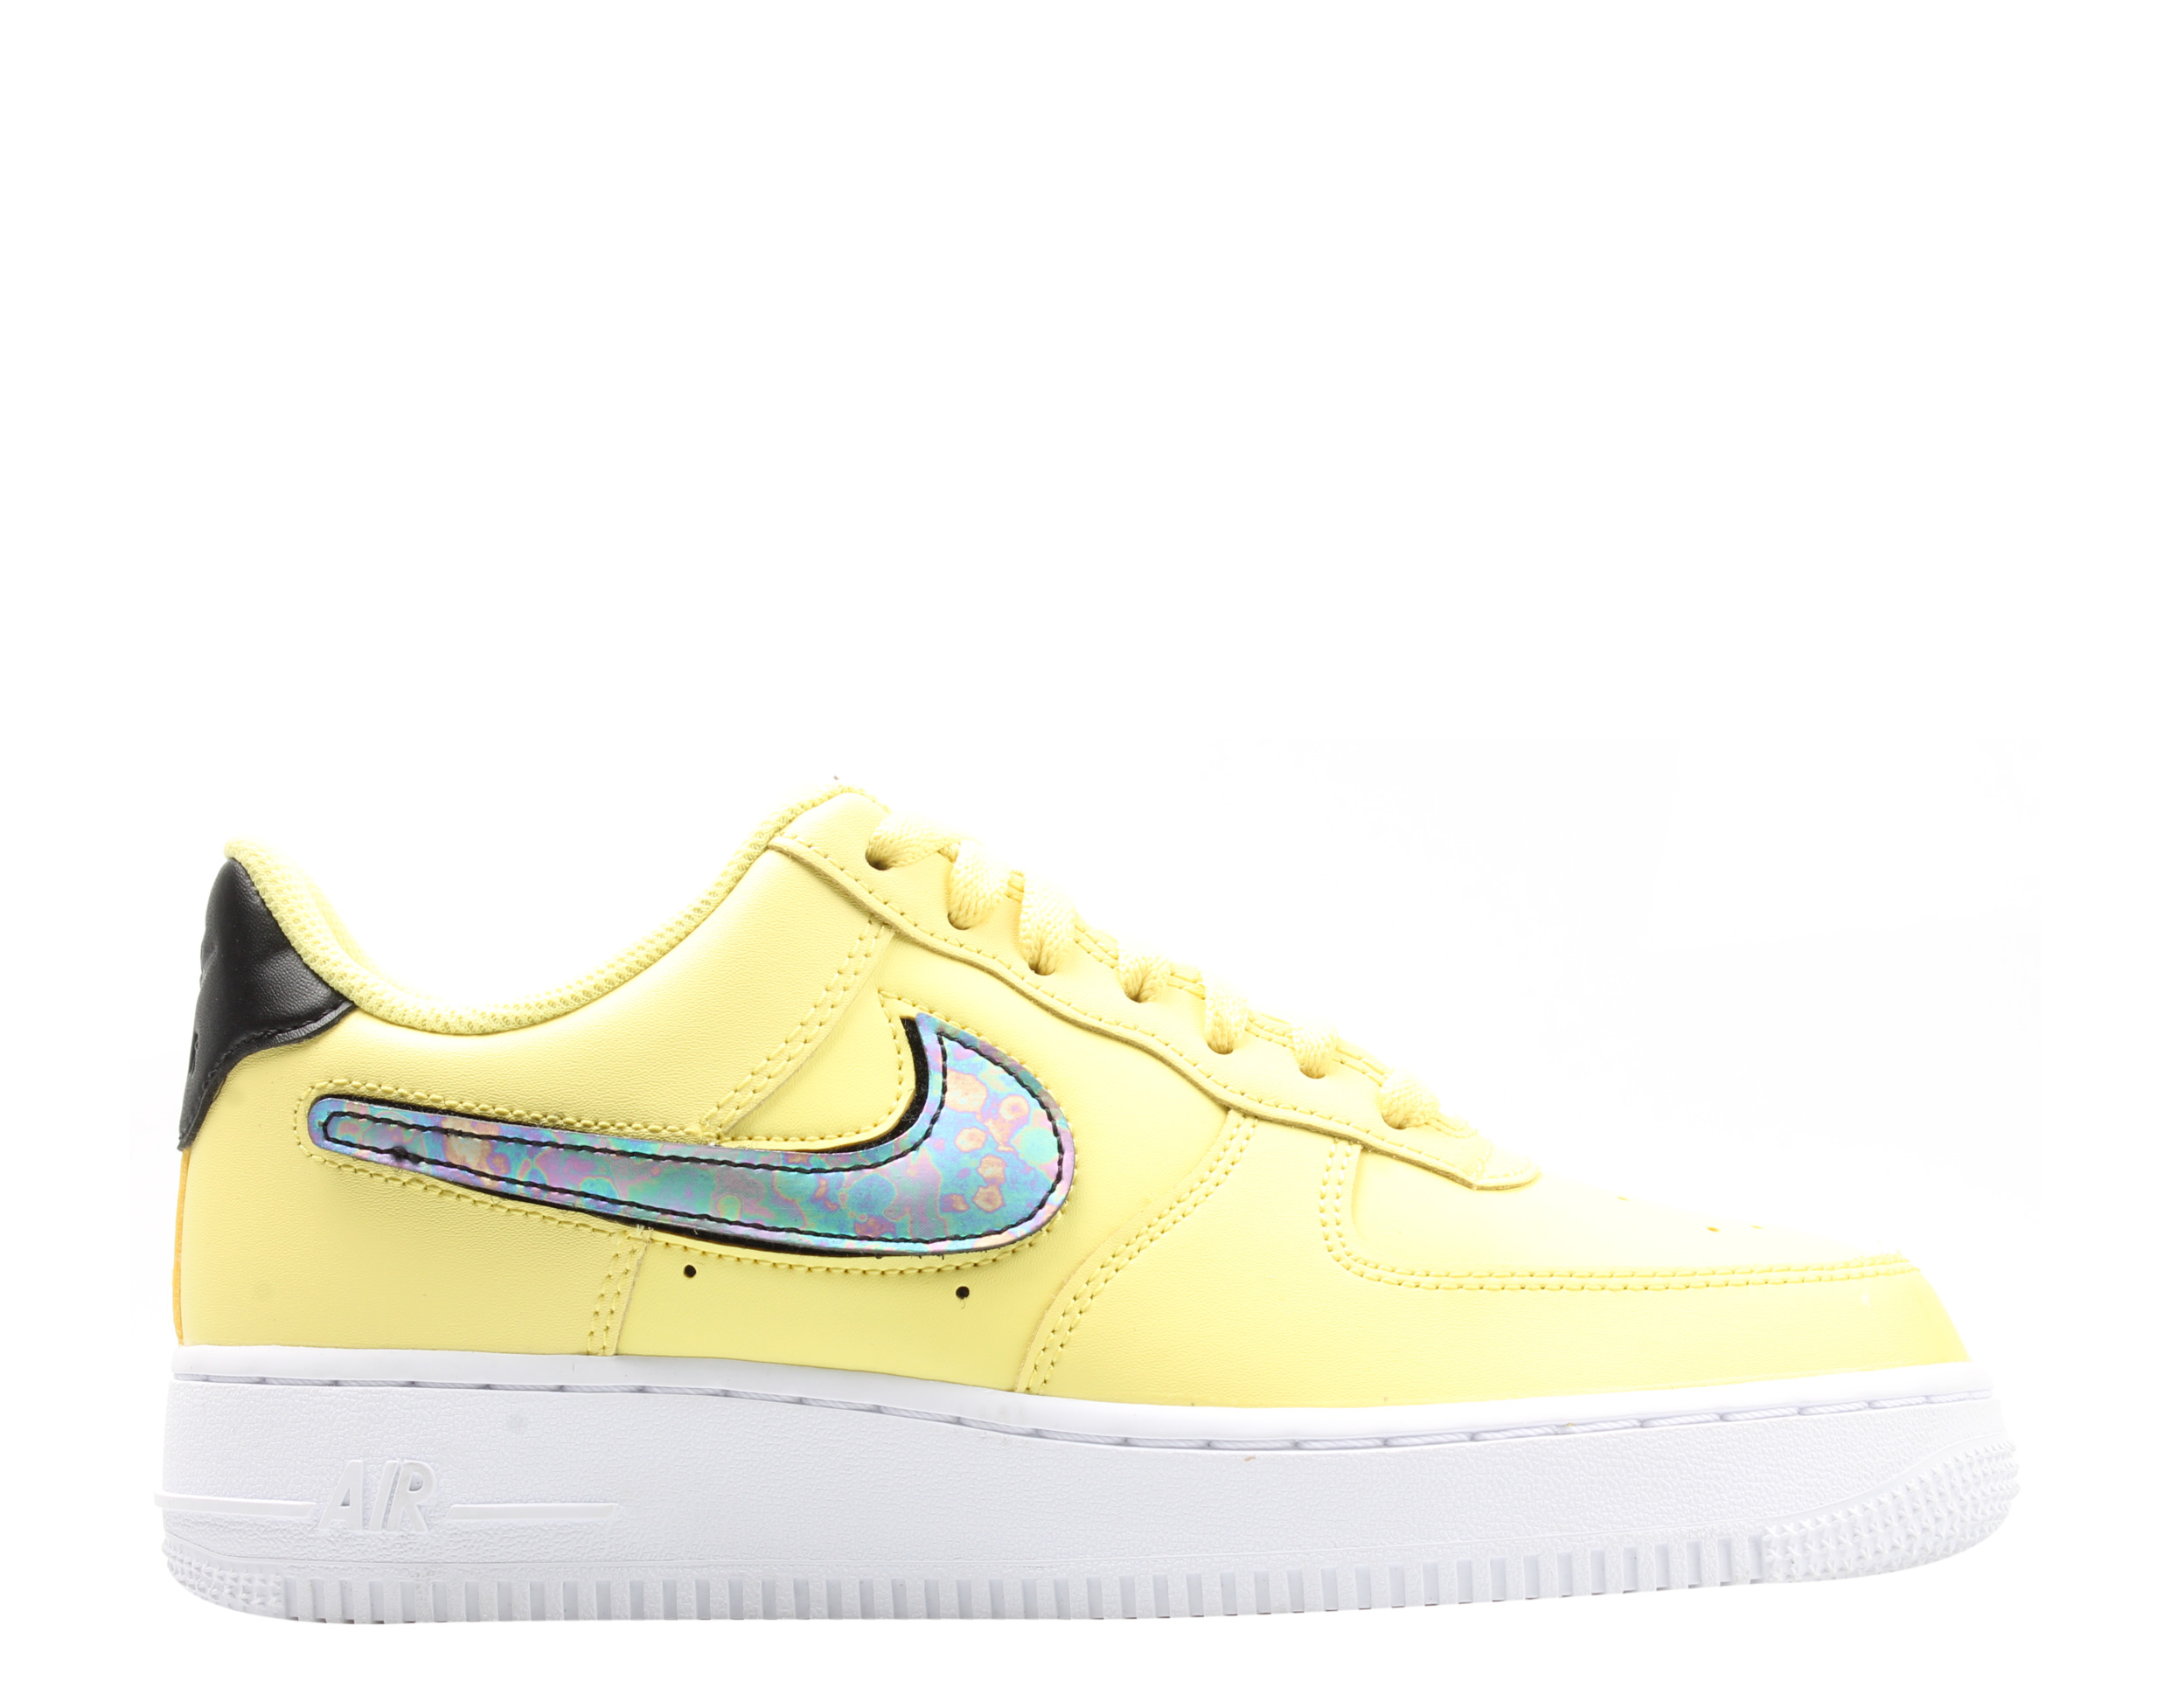 Nike Air Force 1 '07 LV8 3 Yellow Pulse Men's Basketball Shoes CI0067-700